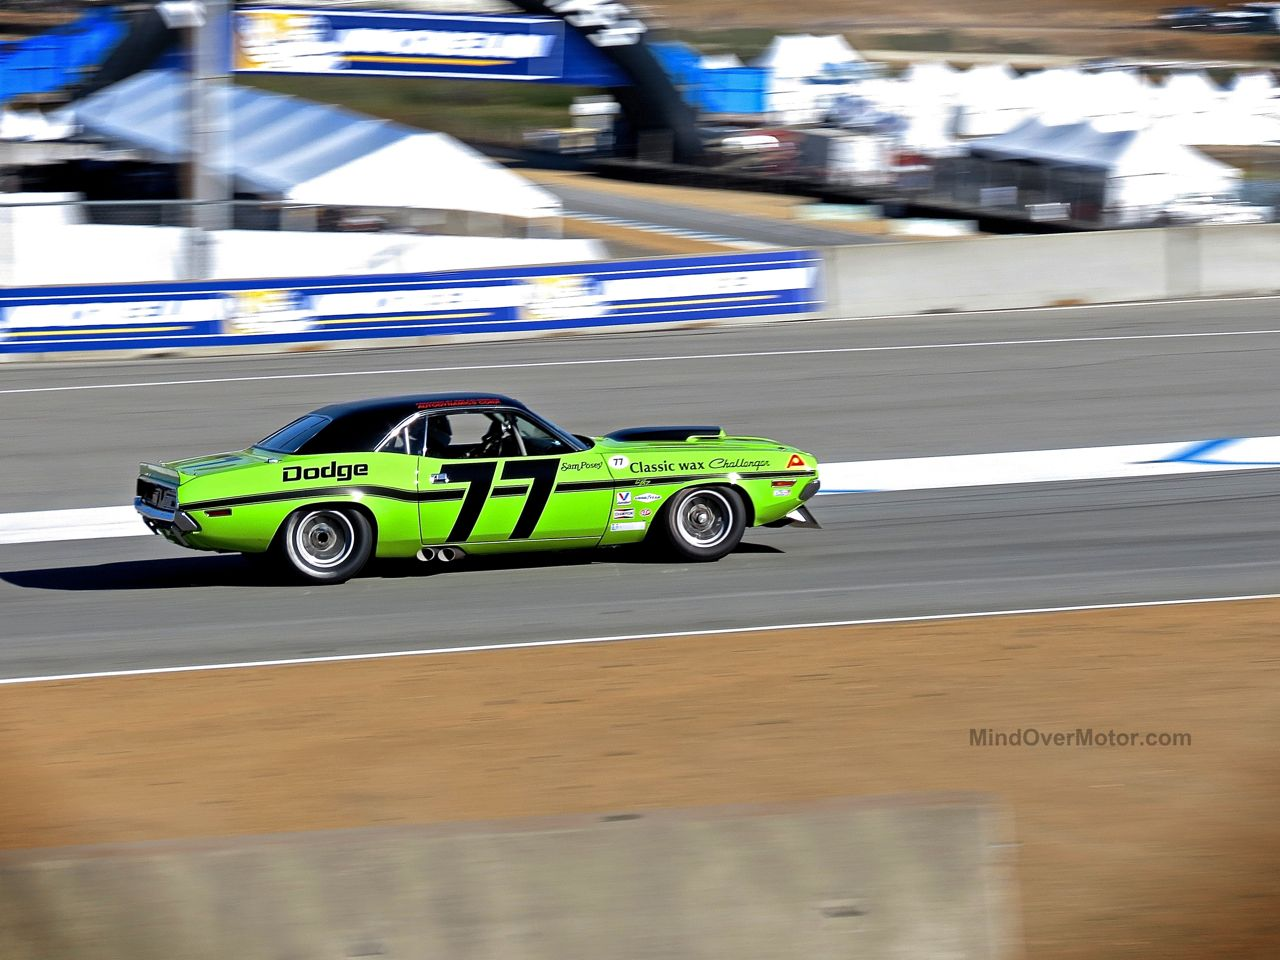 Dodge Challenger Trans Am Race Car Laguna Seca